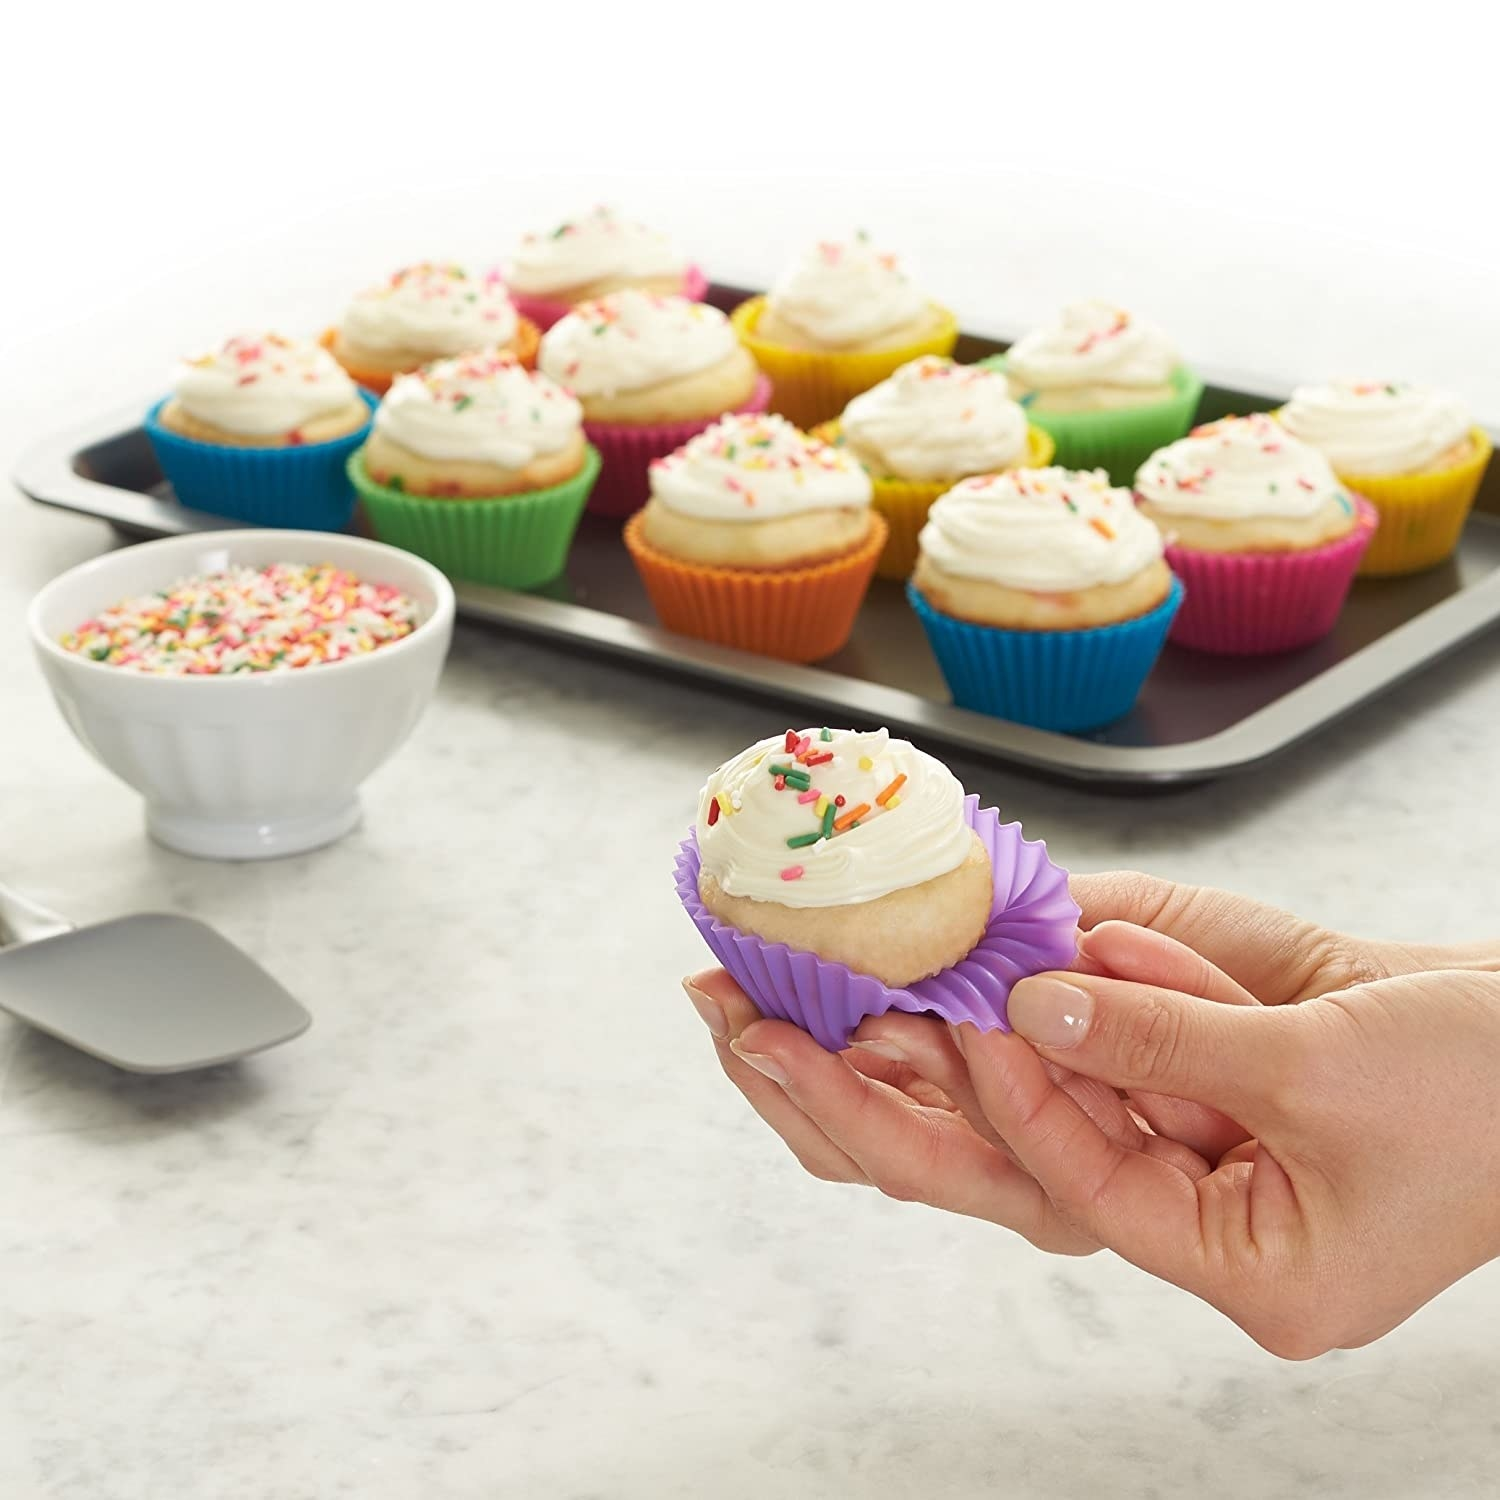 Frosted cupcakes pictured in colourful silicone cupcake moulds.